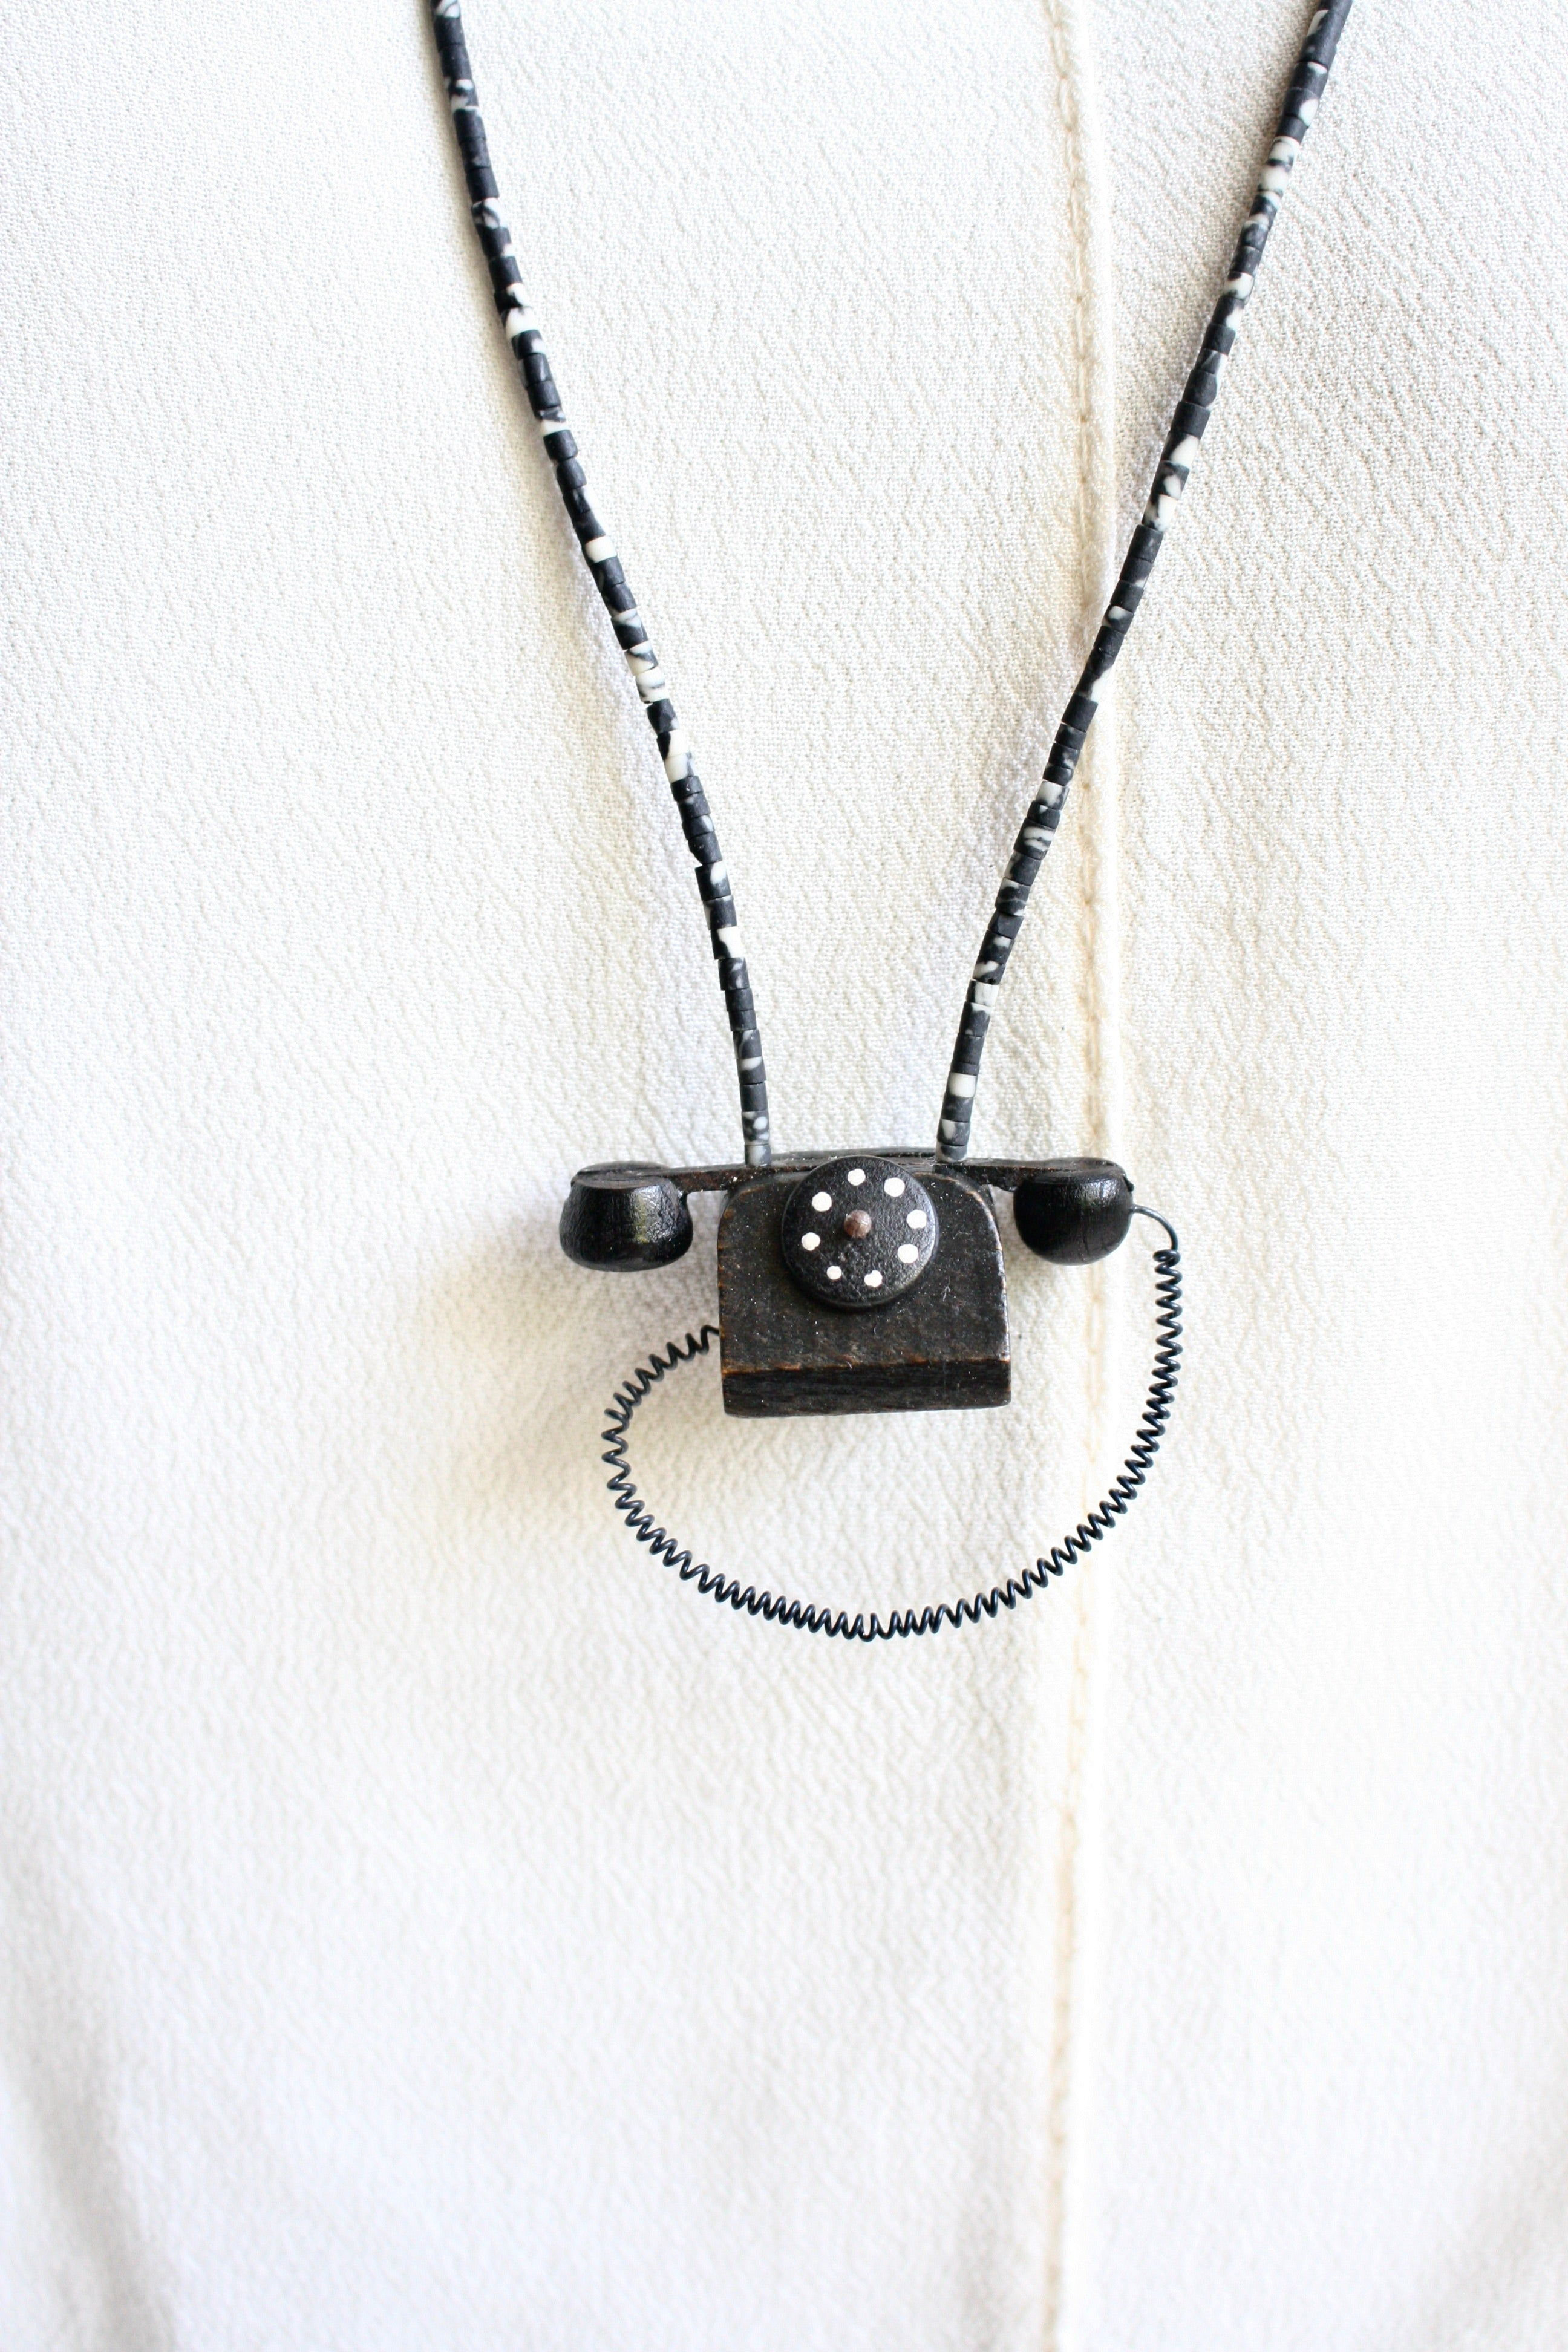 PHONE ME Necklace *One-Off*